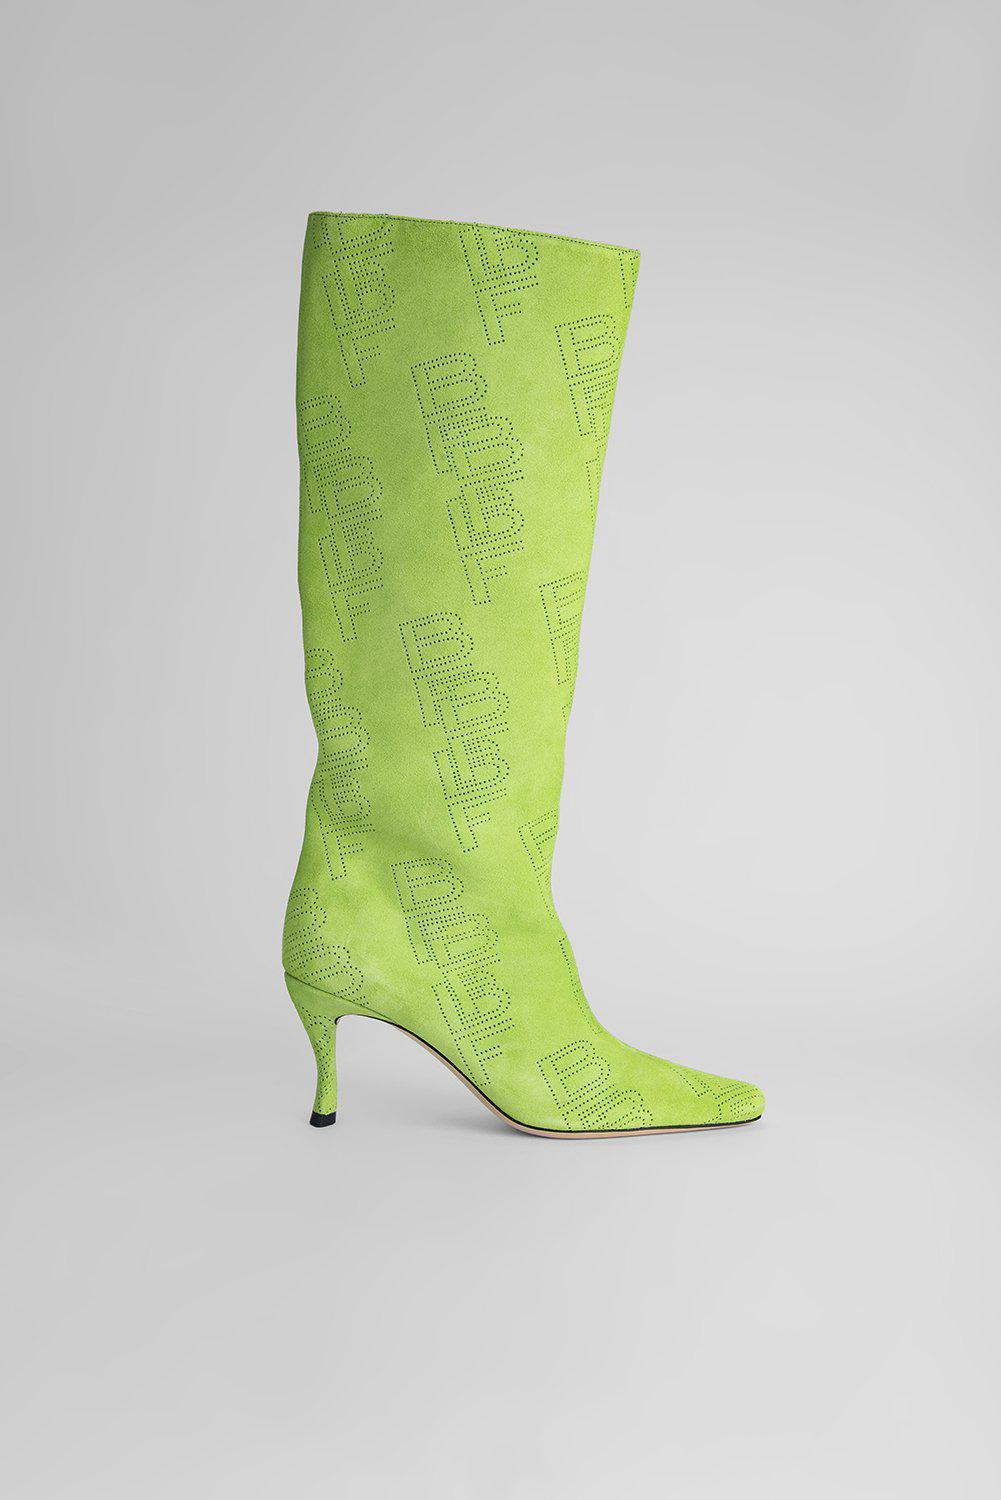 Stevie 42 Bright Green Perforated Suede Leather